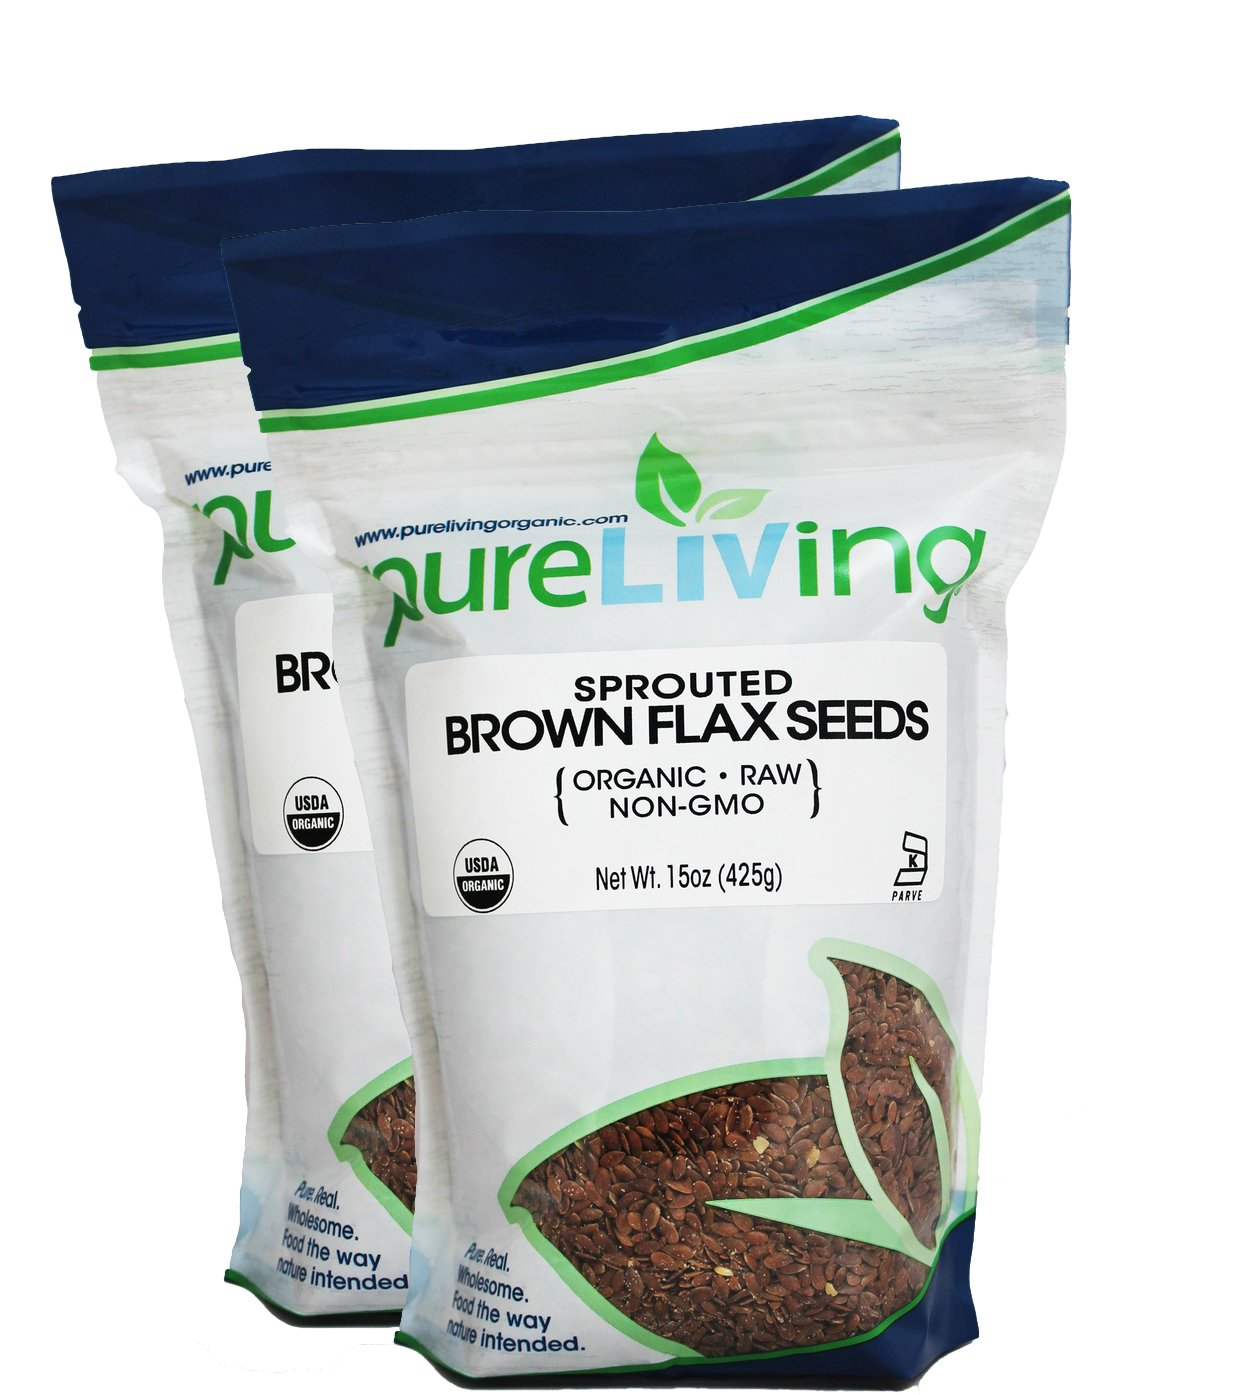 Pure Living Sprouted Brown Flax Seeds 15 oz - 2 Pack